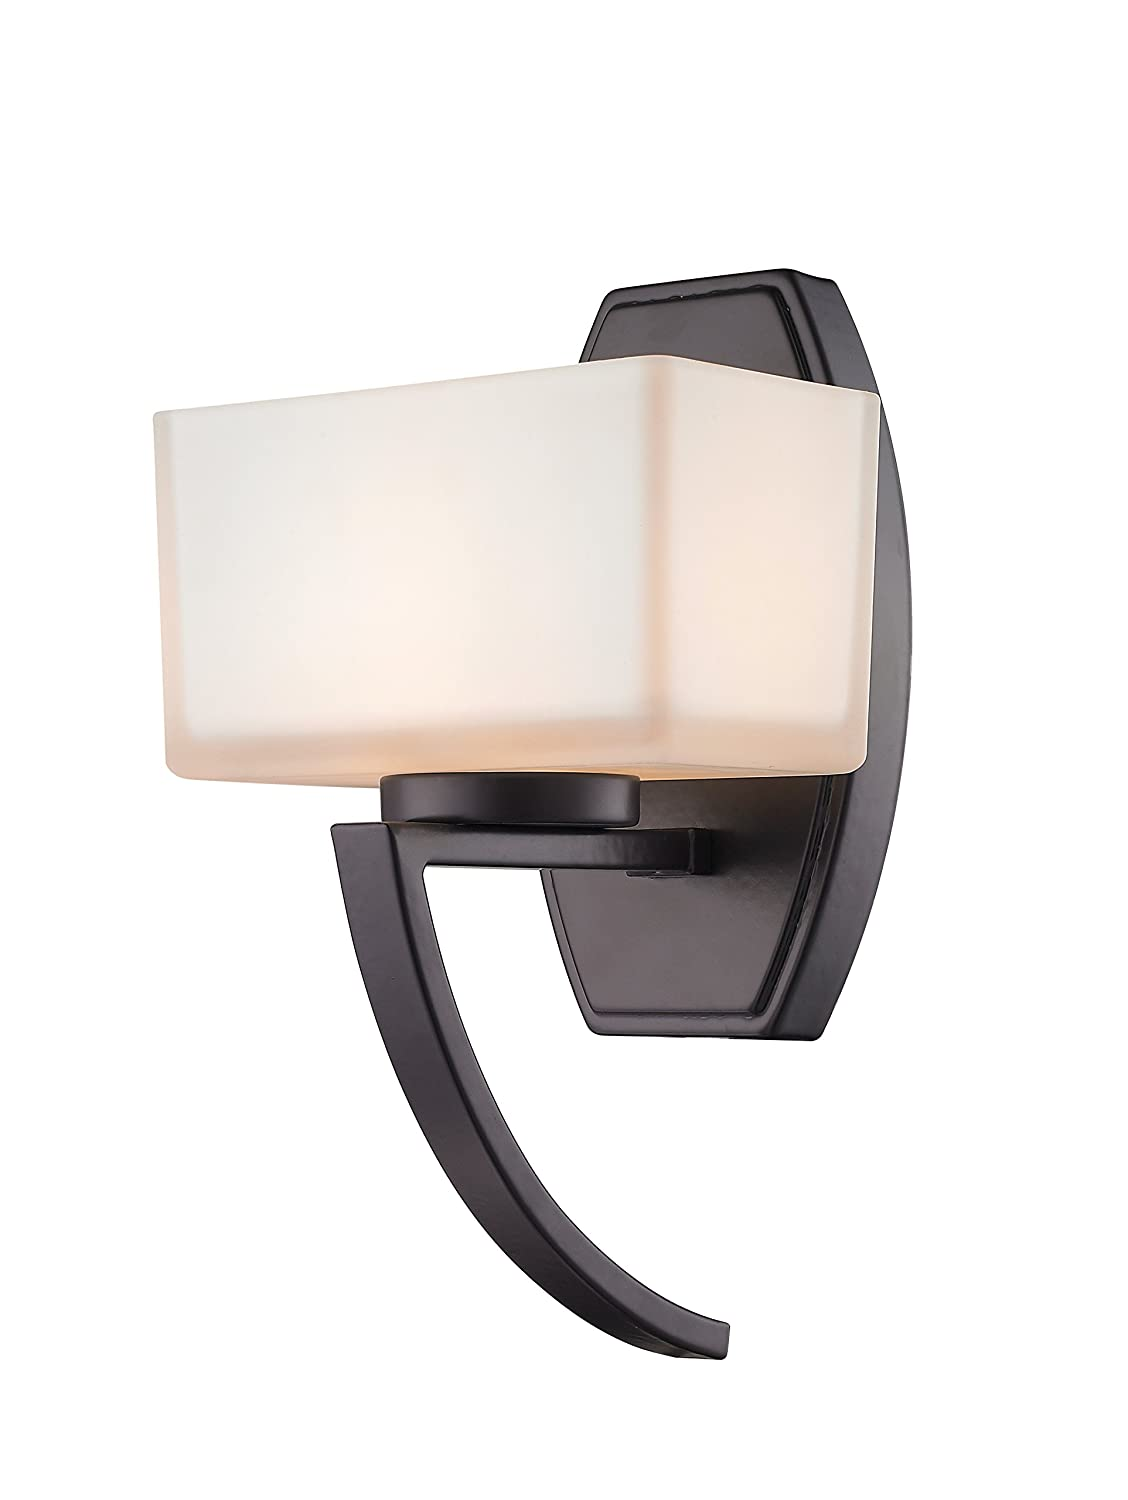 Z-Lite 614-1SBRZ Cardine 1 Light Wall Sconce